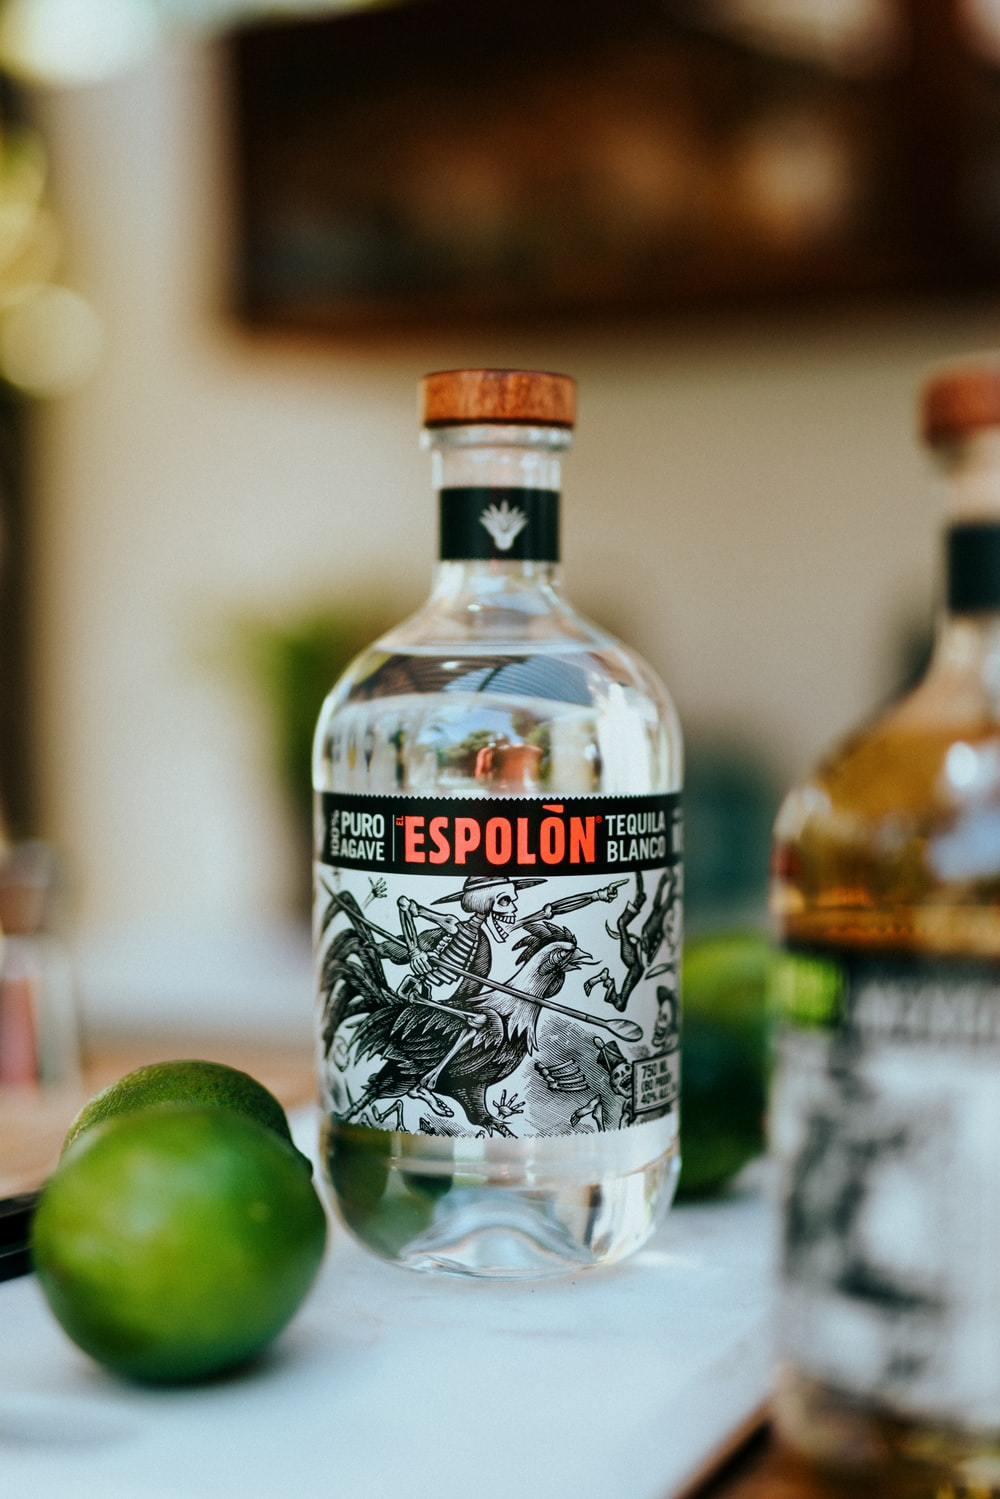 Espolòn Tequila bottle with limes